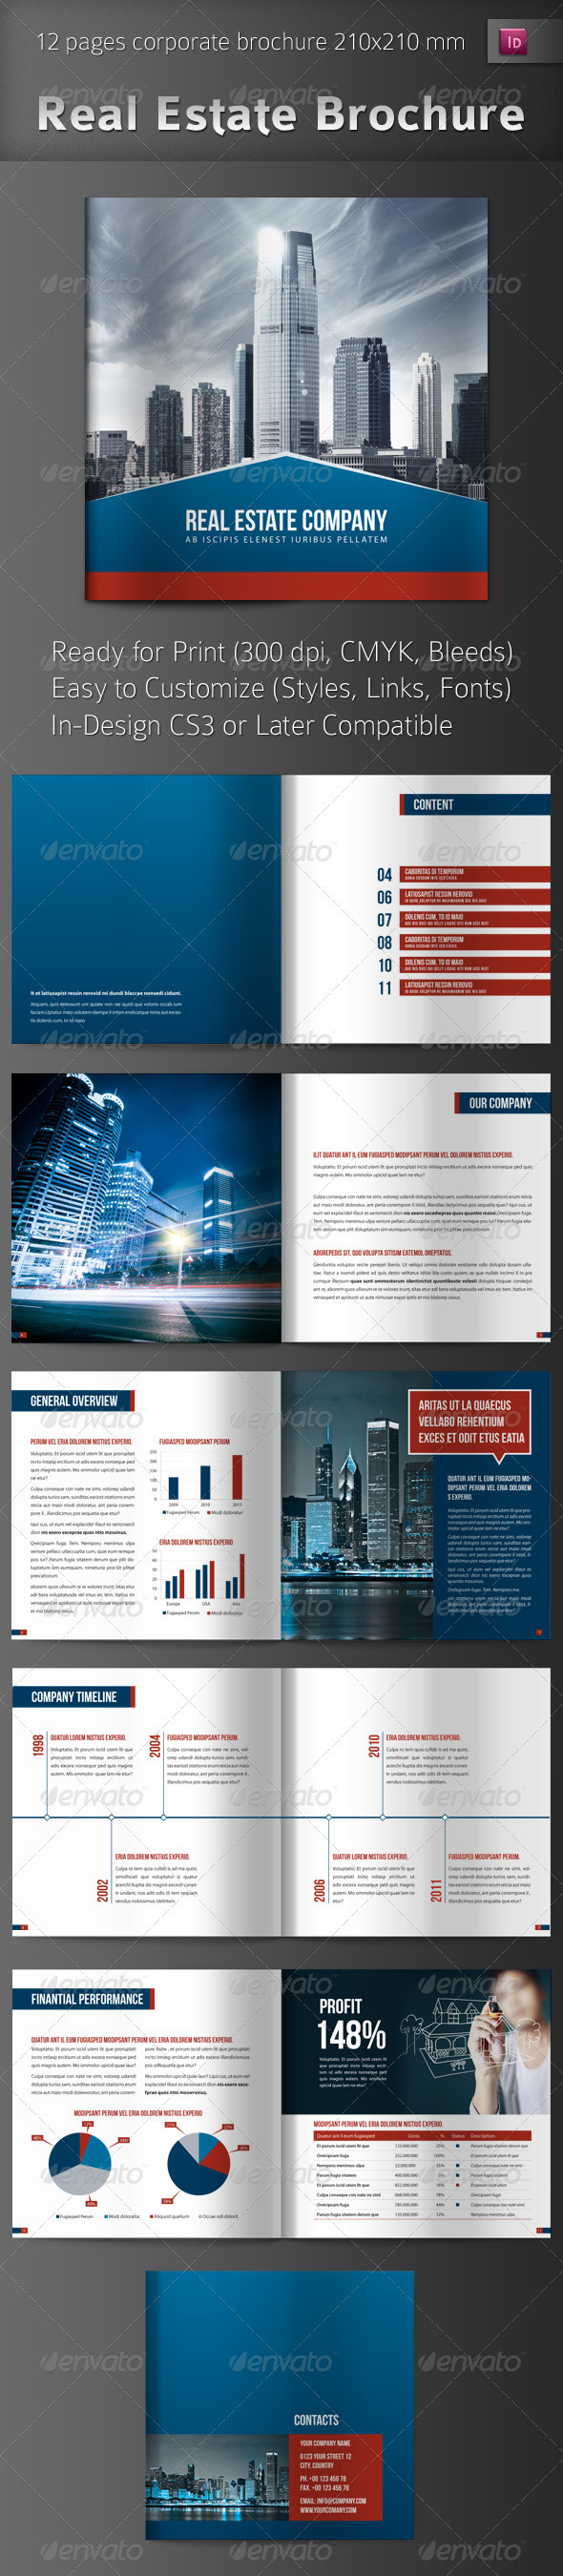 Graphic River Real Estate Brochure Print Templates -  Brochures  Corporate 721501